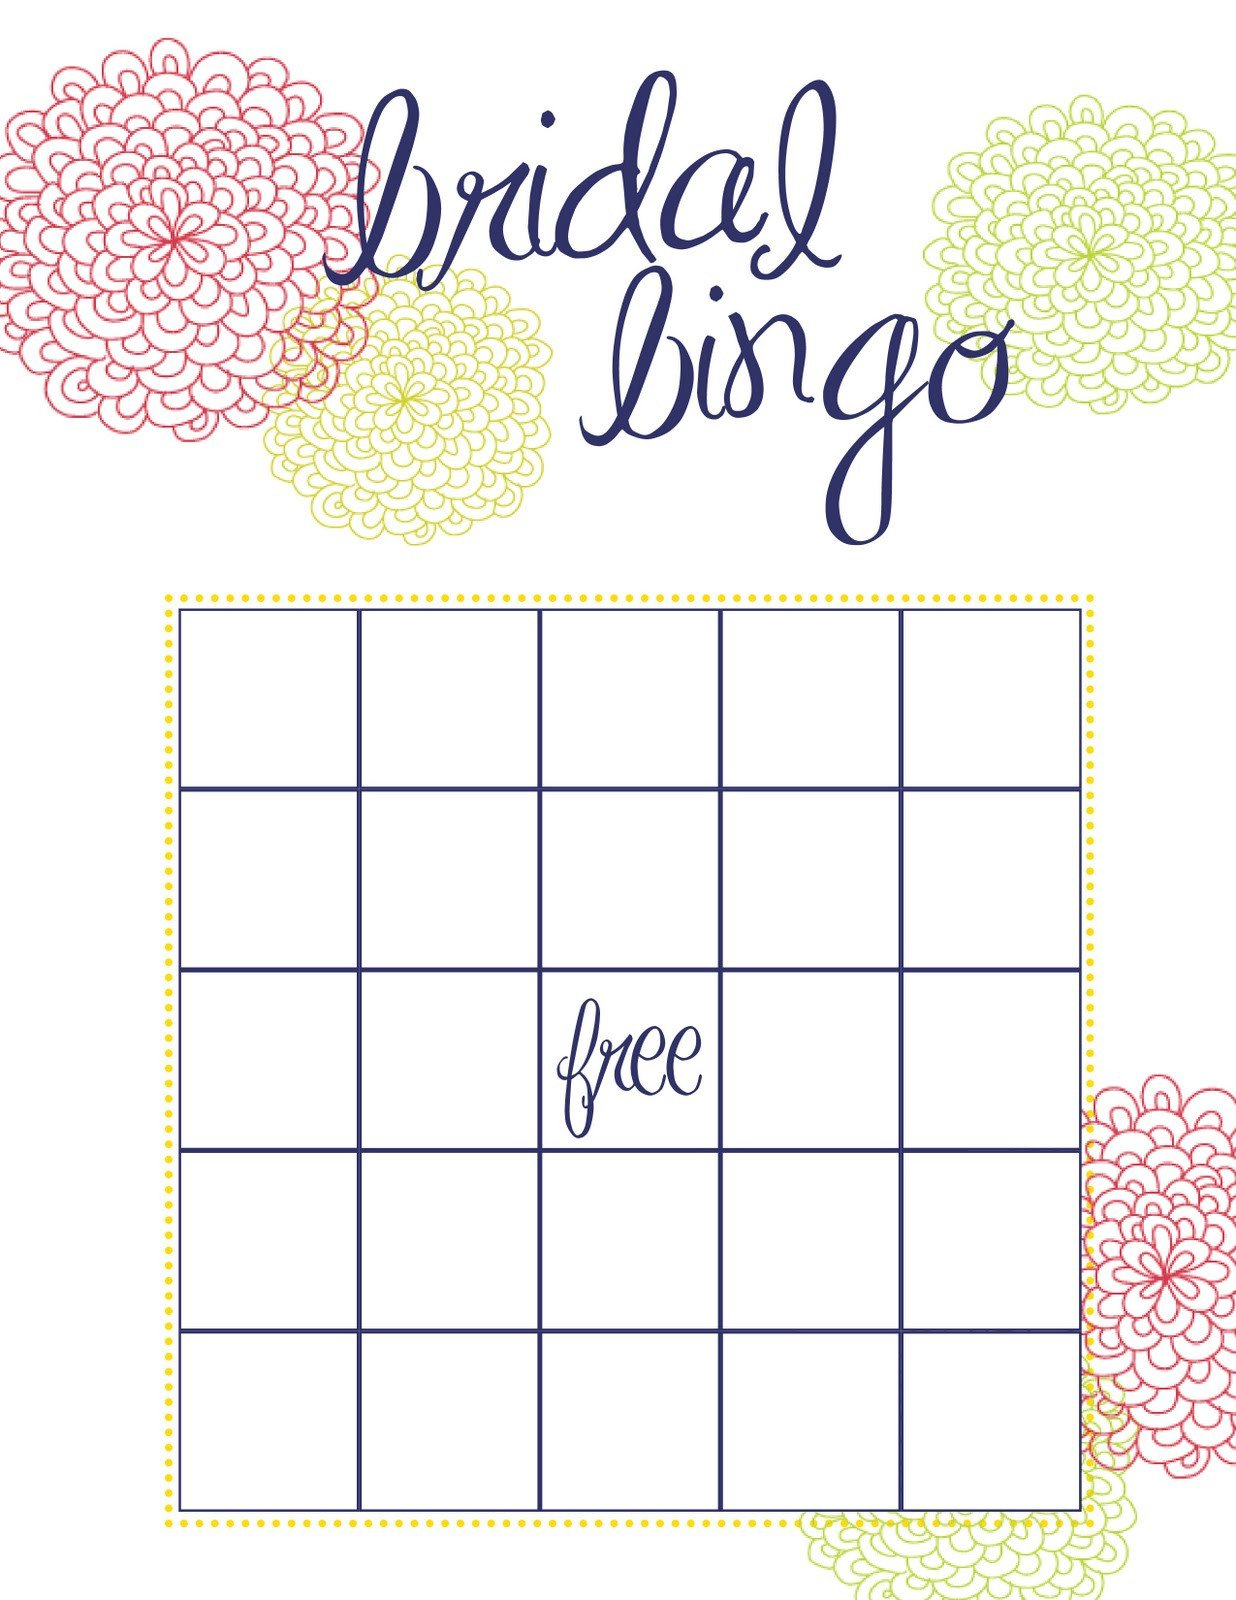 Bridal Shower Bingo Templates How to Throw the Best Bridal Shower Pretty Happy Love